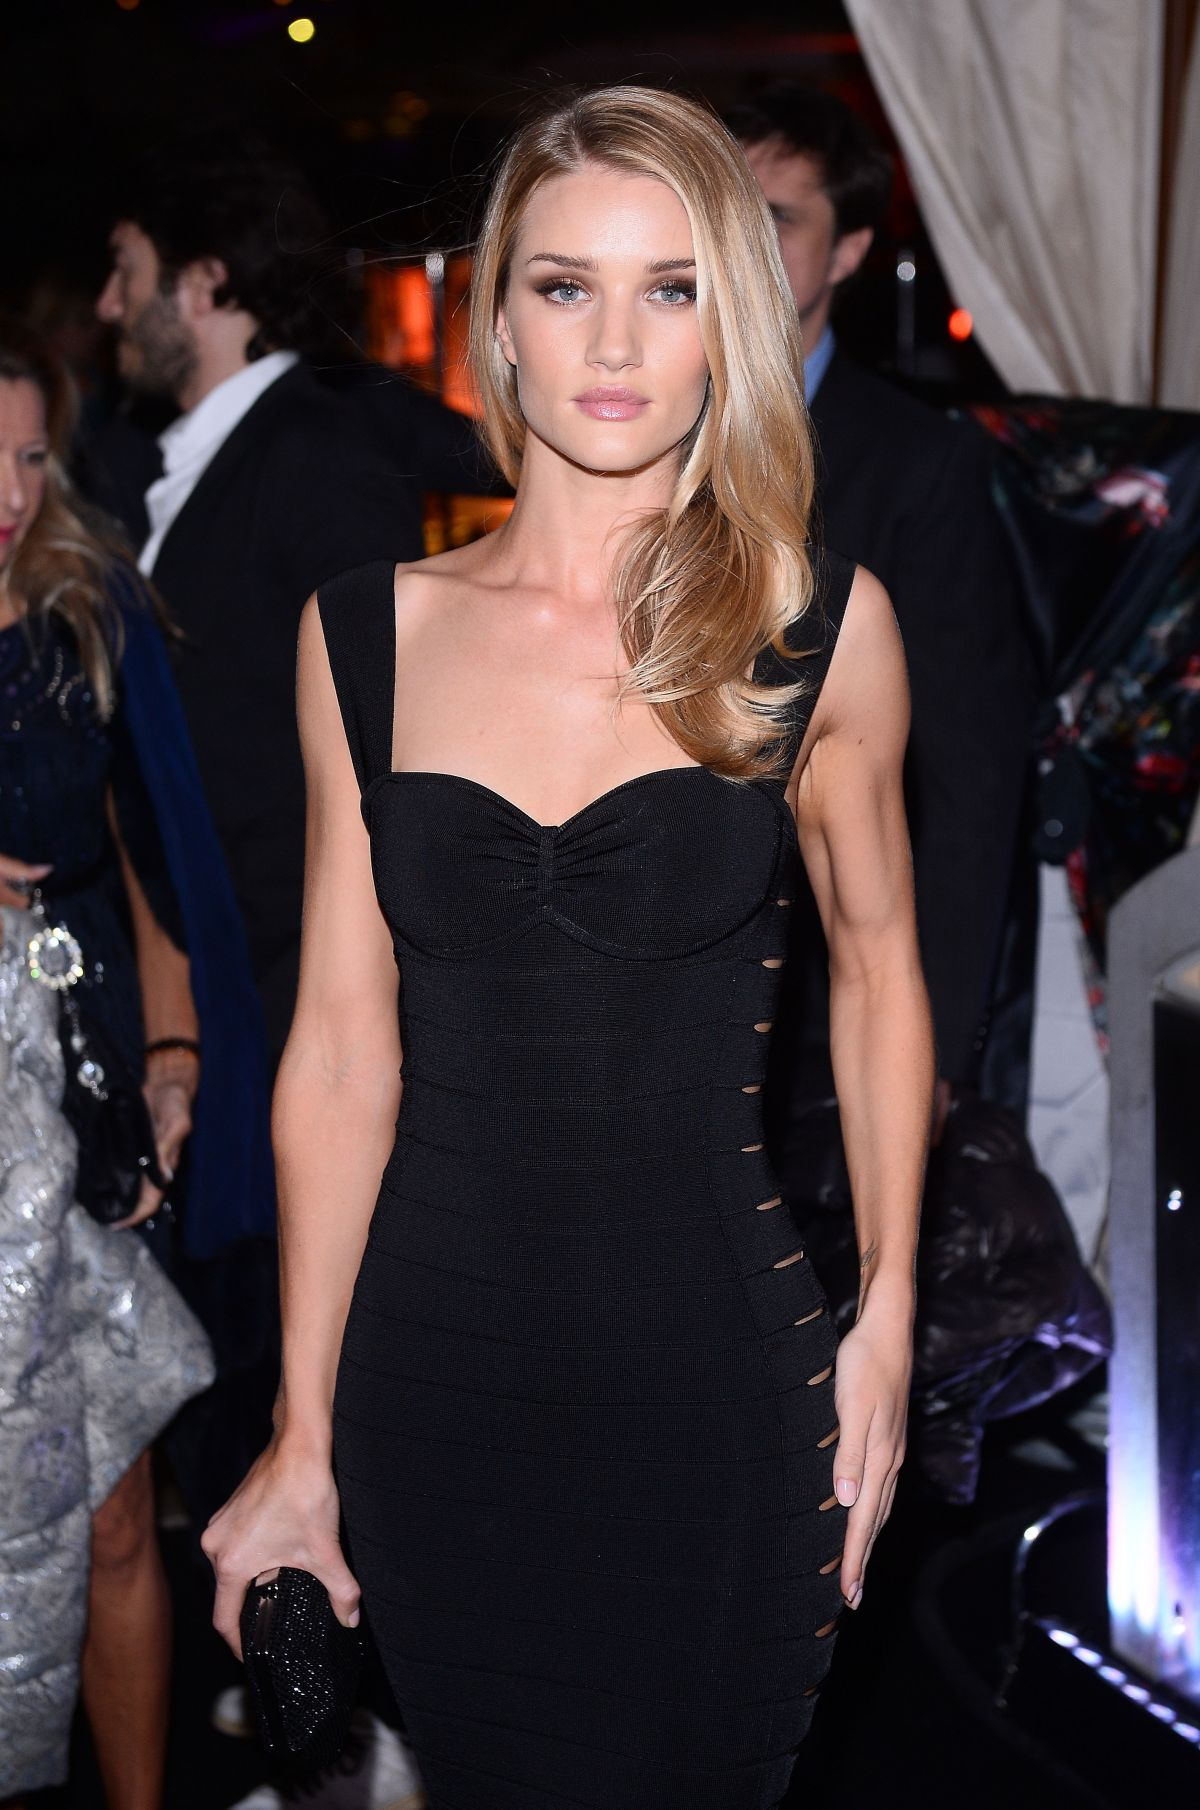 defcb14f6ee63 Rosie Huntington-Whiteley At The Roberto Cavalli Yacht Party In Cannes